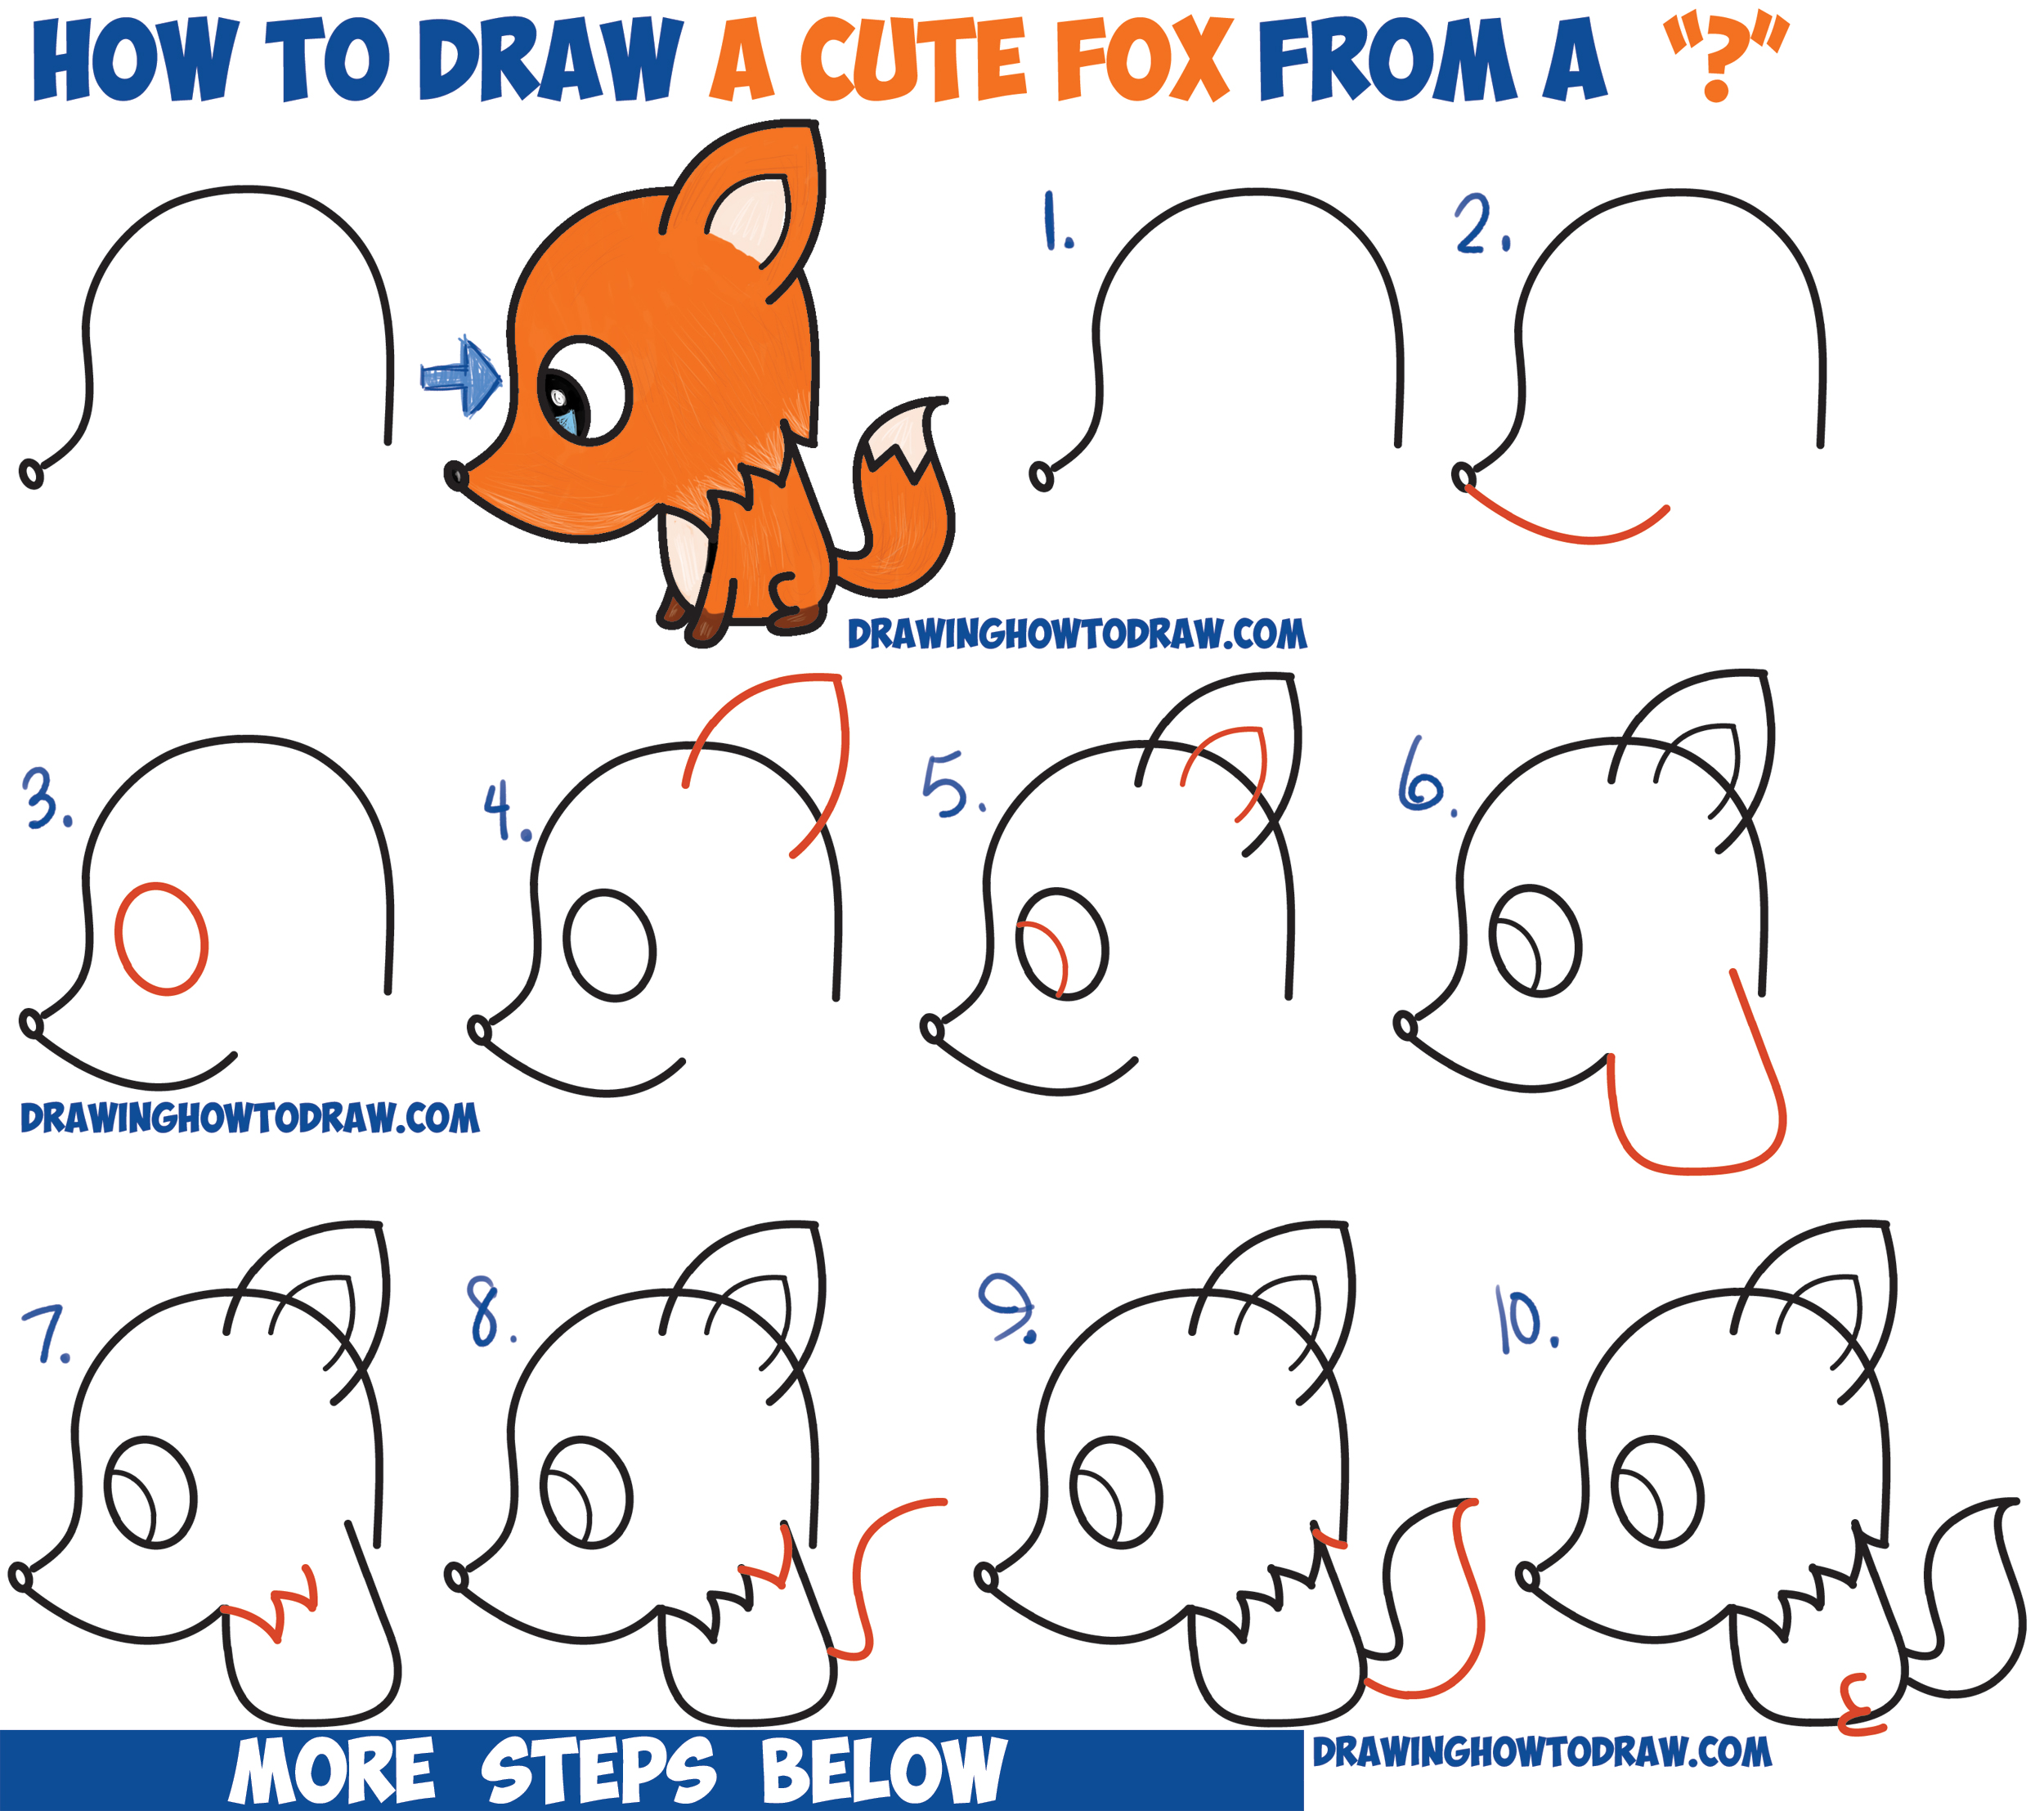 how to draw a cute cartoon fox from a question mark kawaii chibi